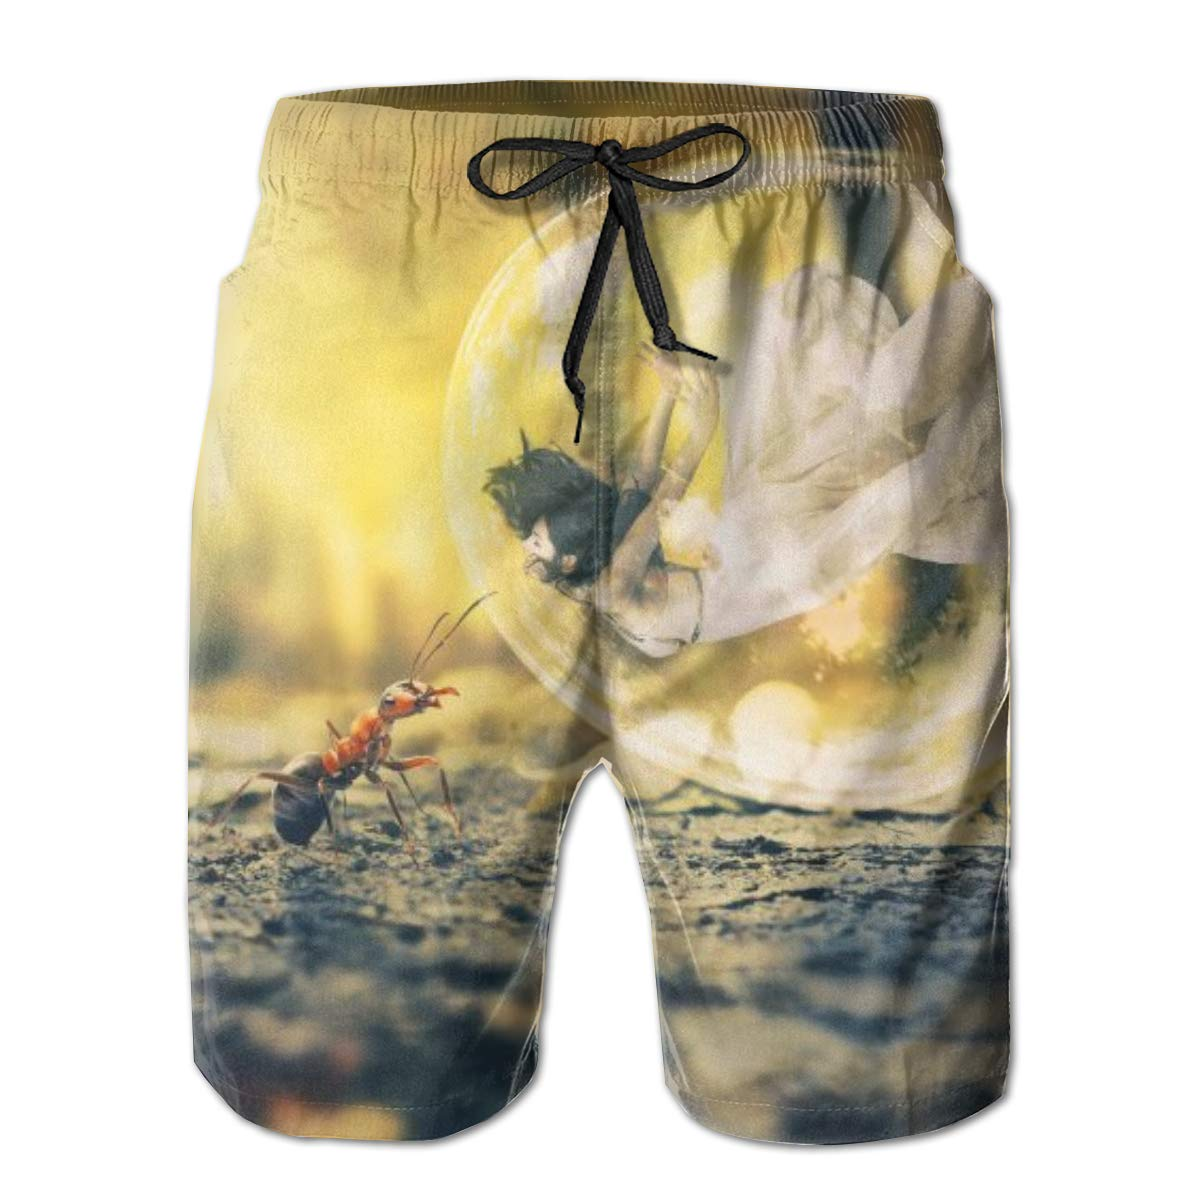 Camel Summer Holiday Mesh Lining Swimwear Board Shorts with Pockets Hateone Mens Beach Shorts Quick Dry